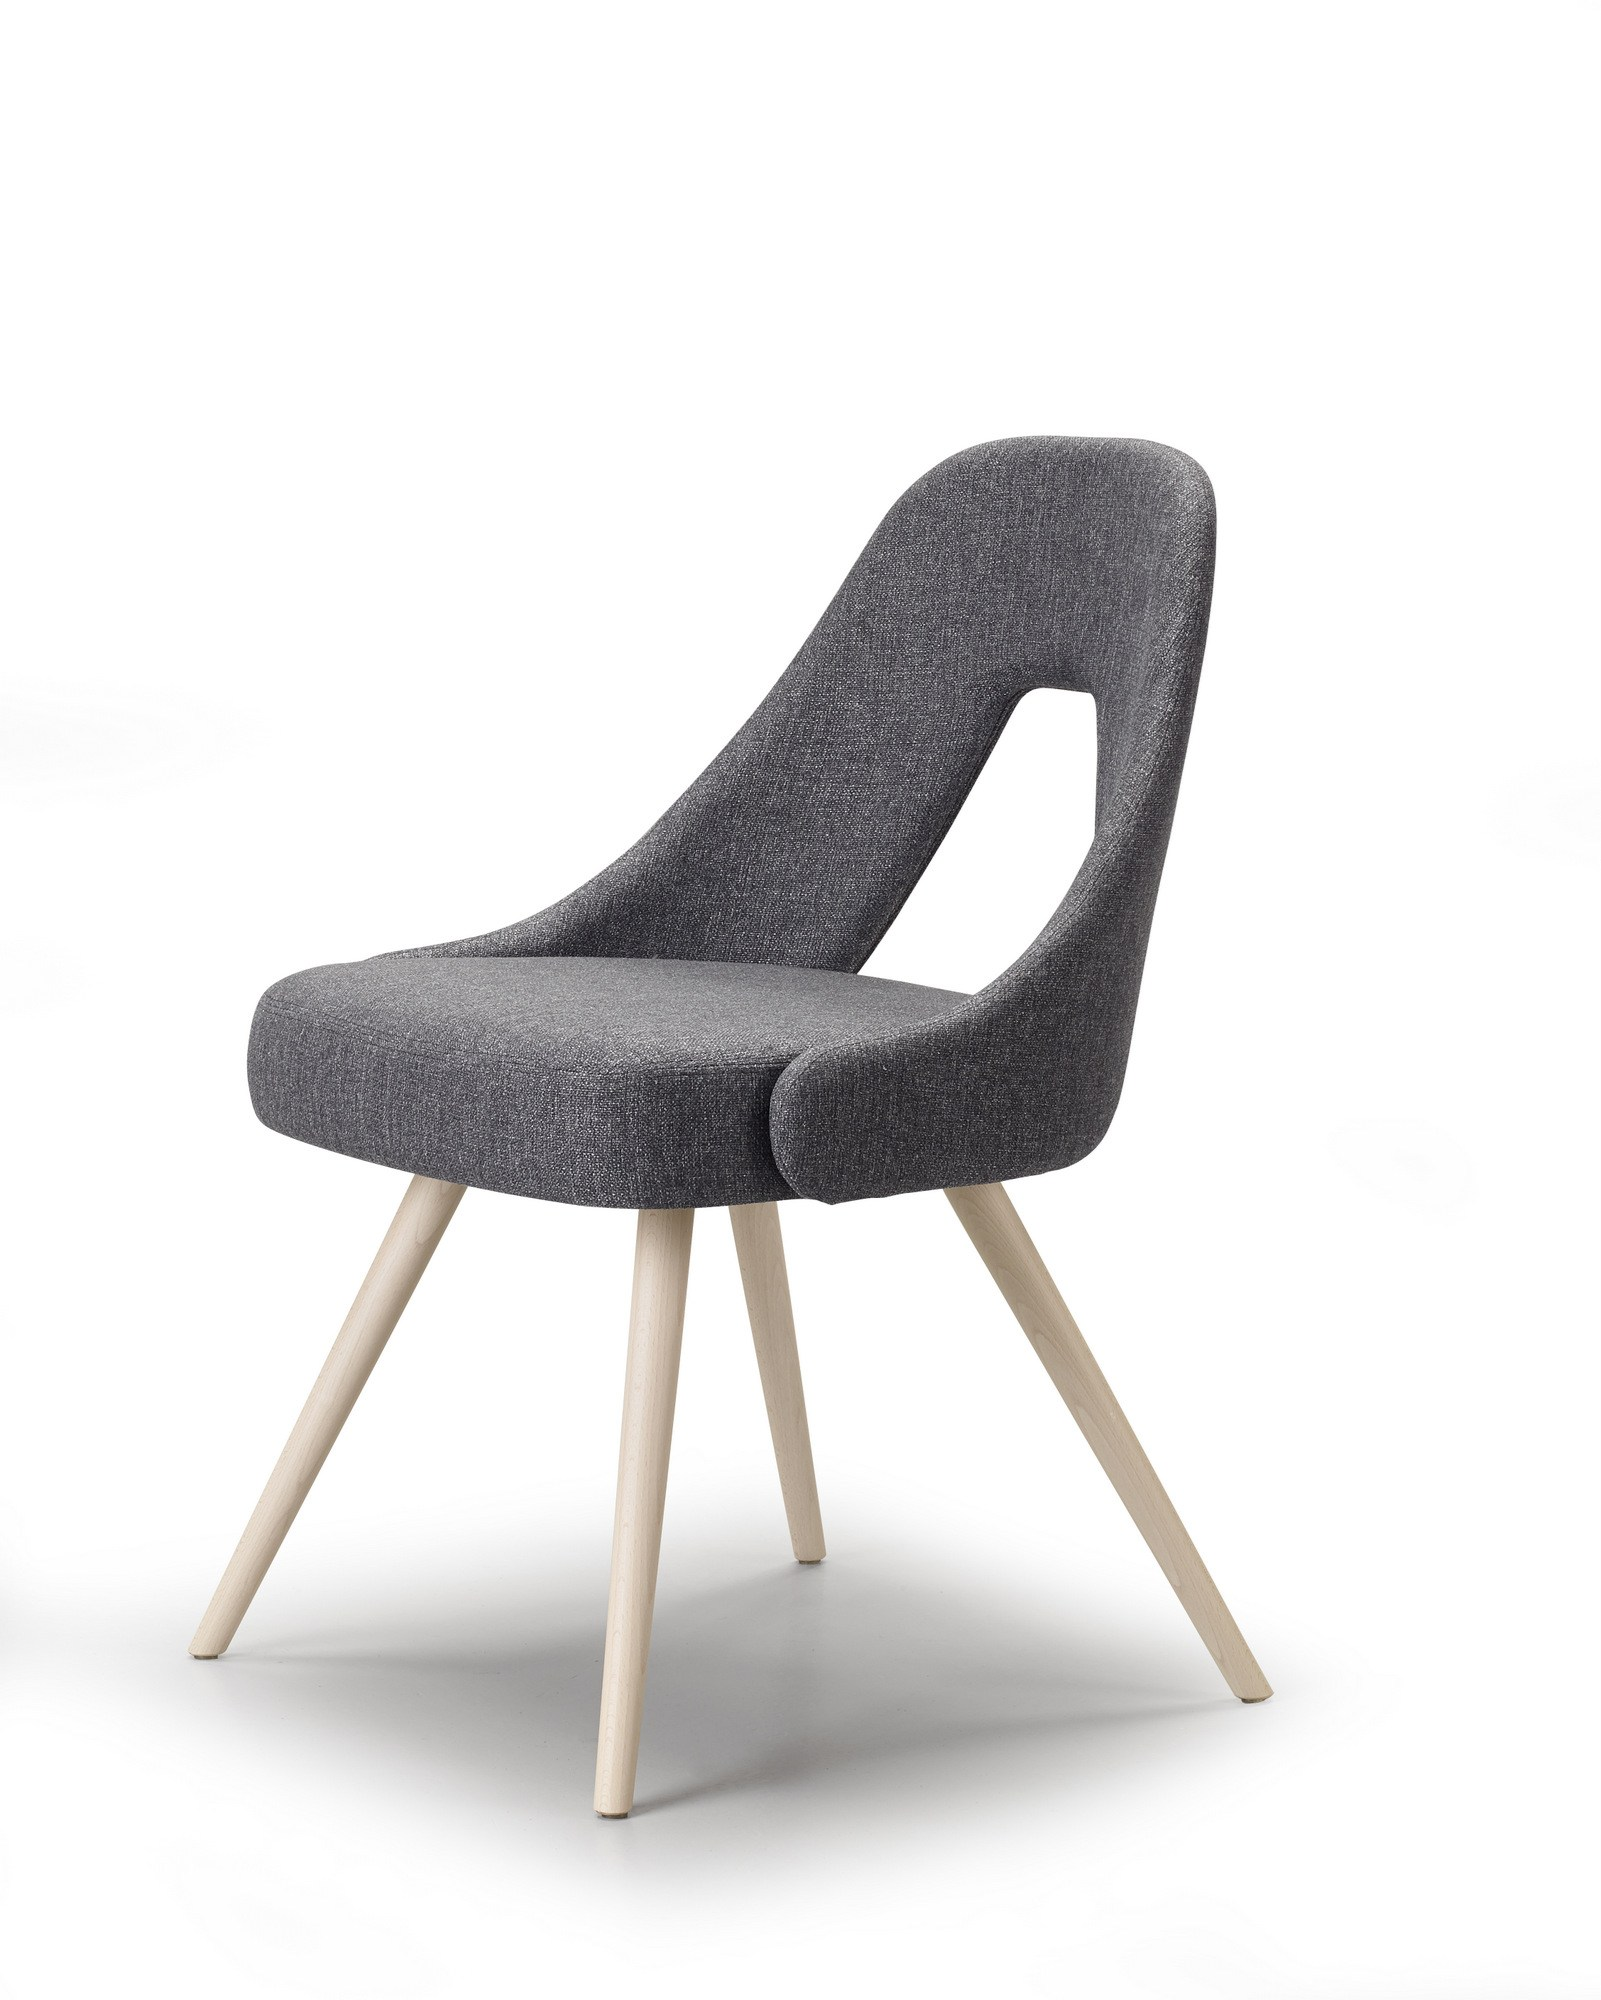 Me Chair by Simone Micheli for Scab Design